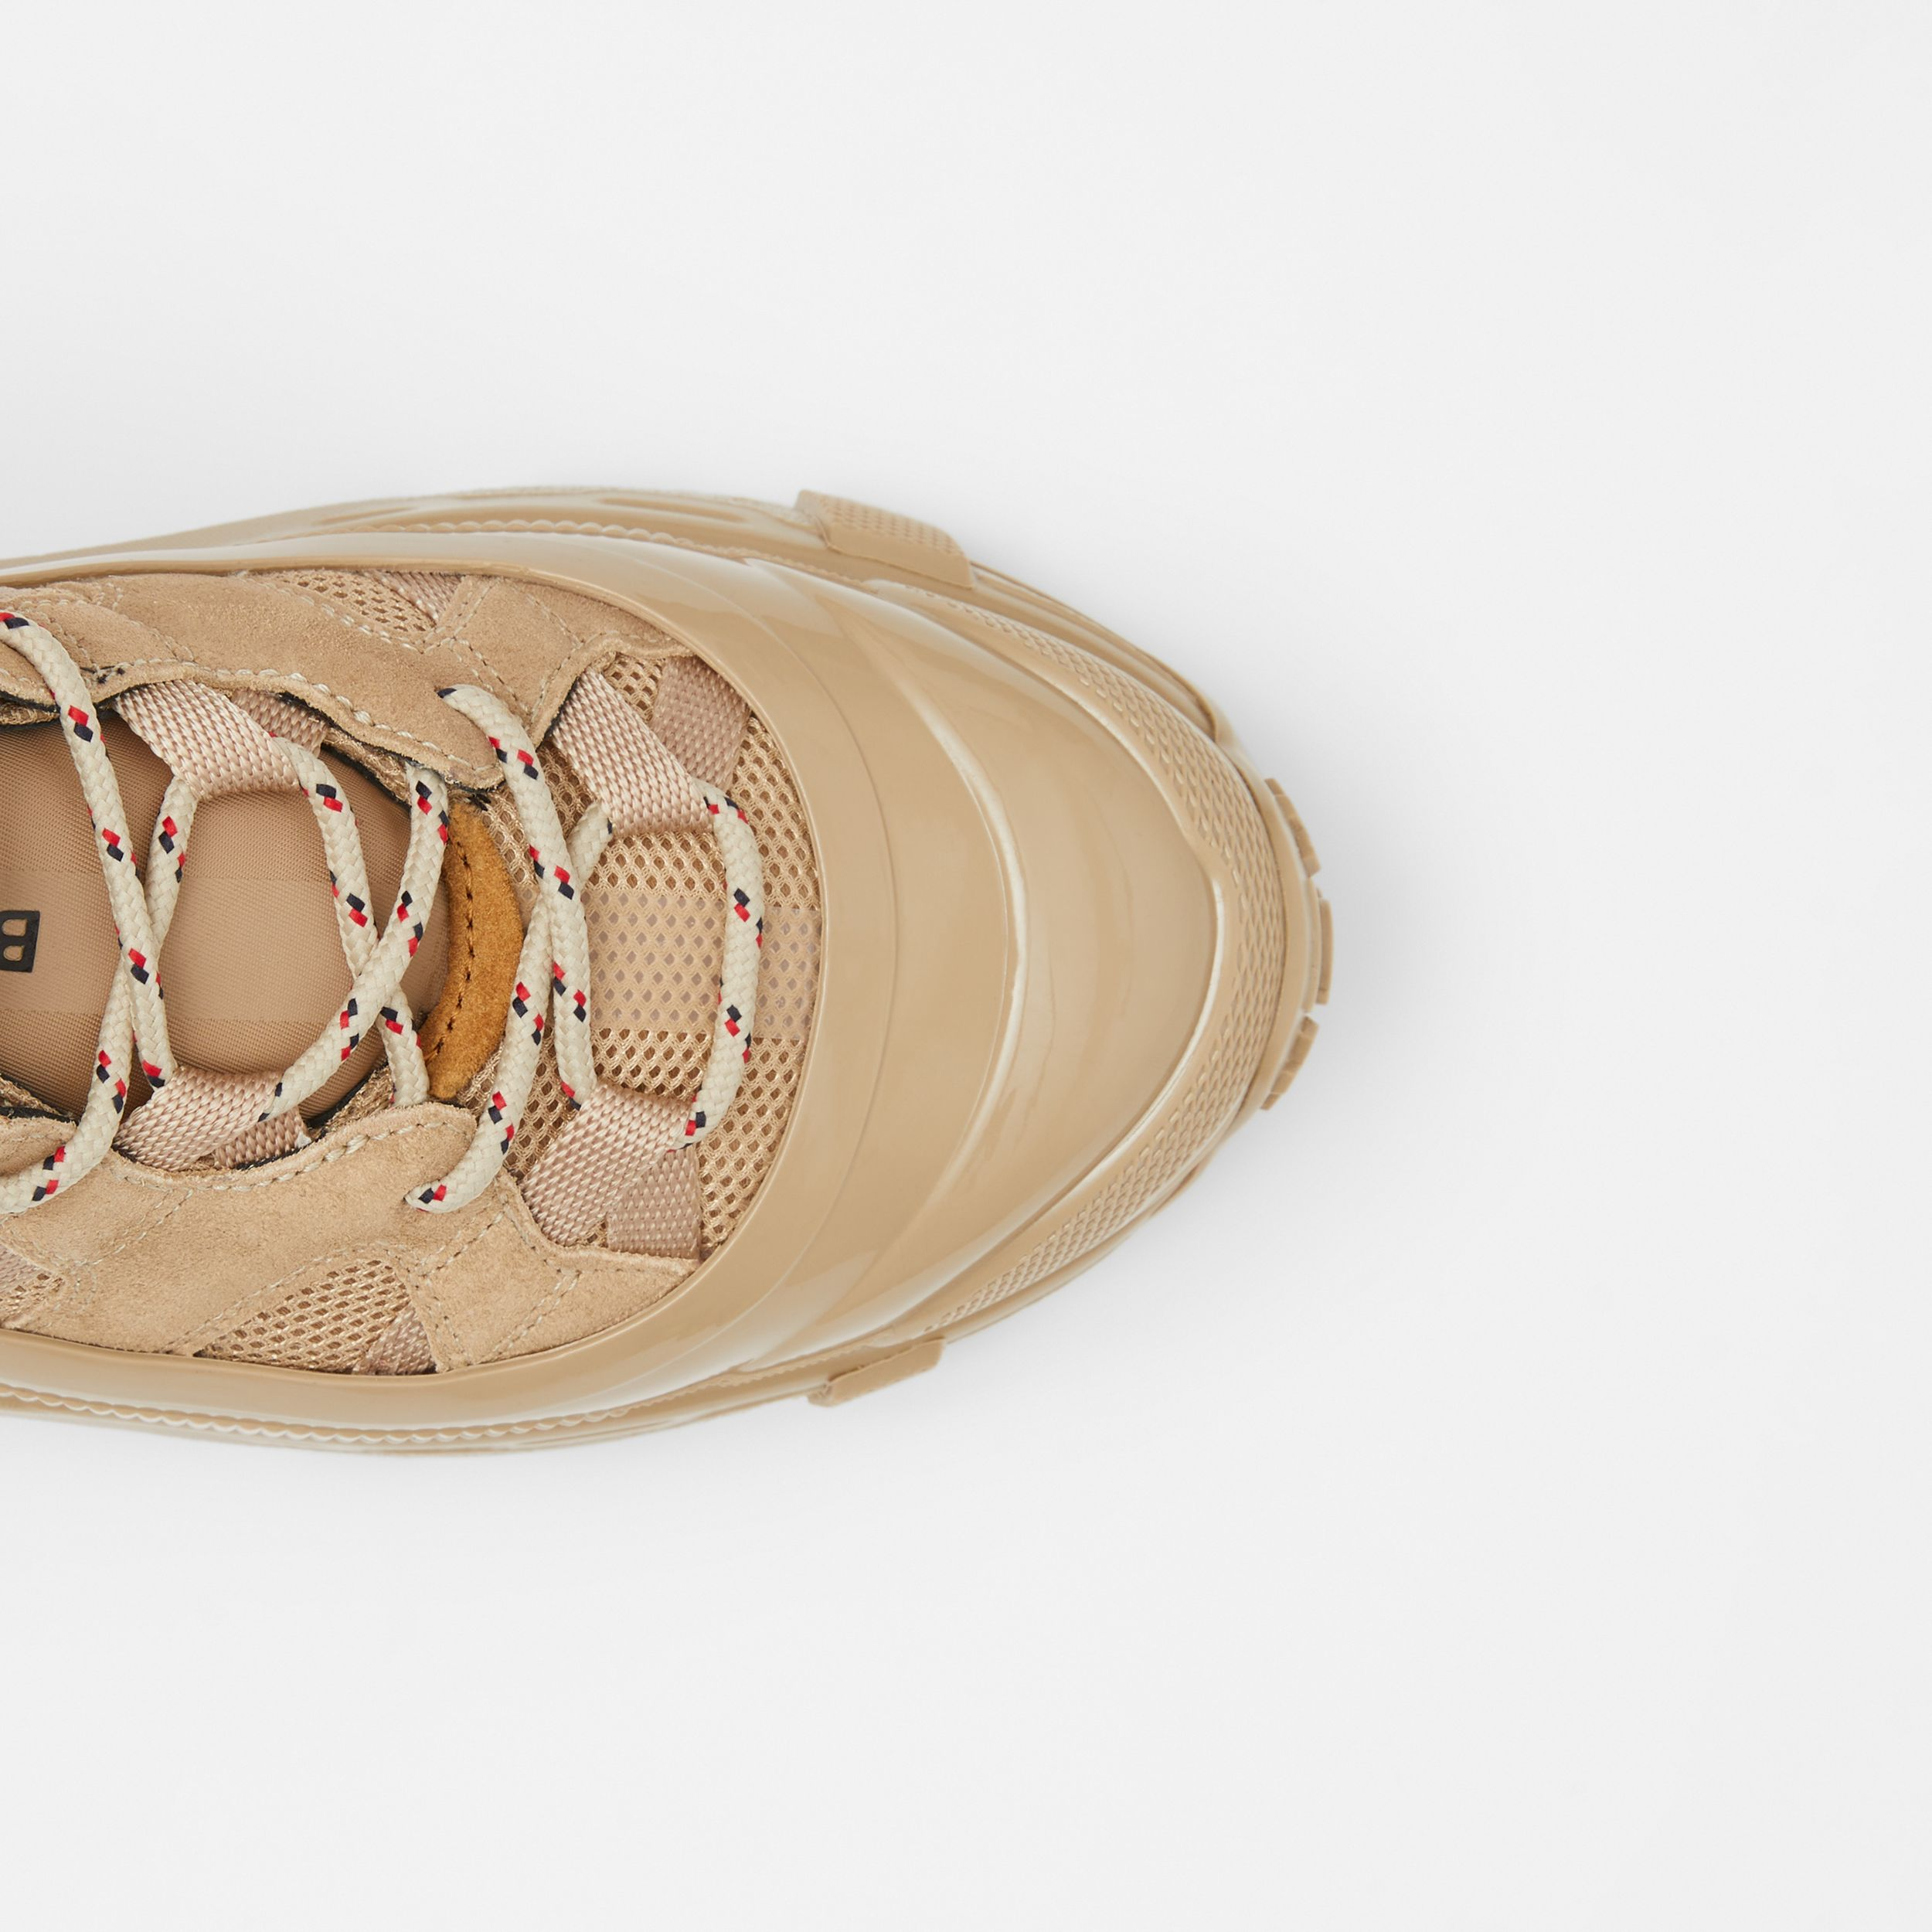 Suede, Mesh and Leather Arthur Sneakers in Beige - Women | Burberry - 2